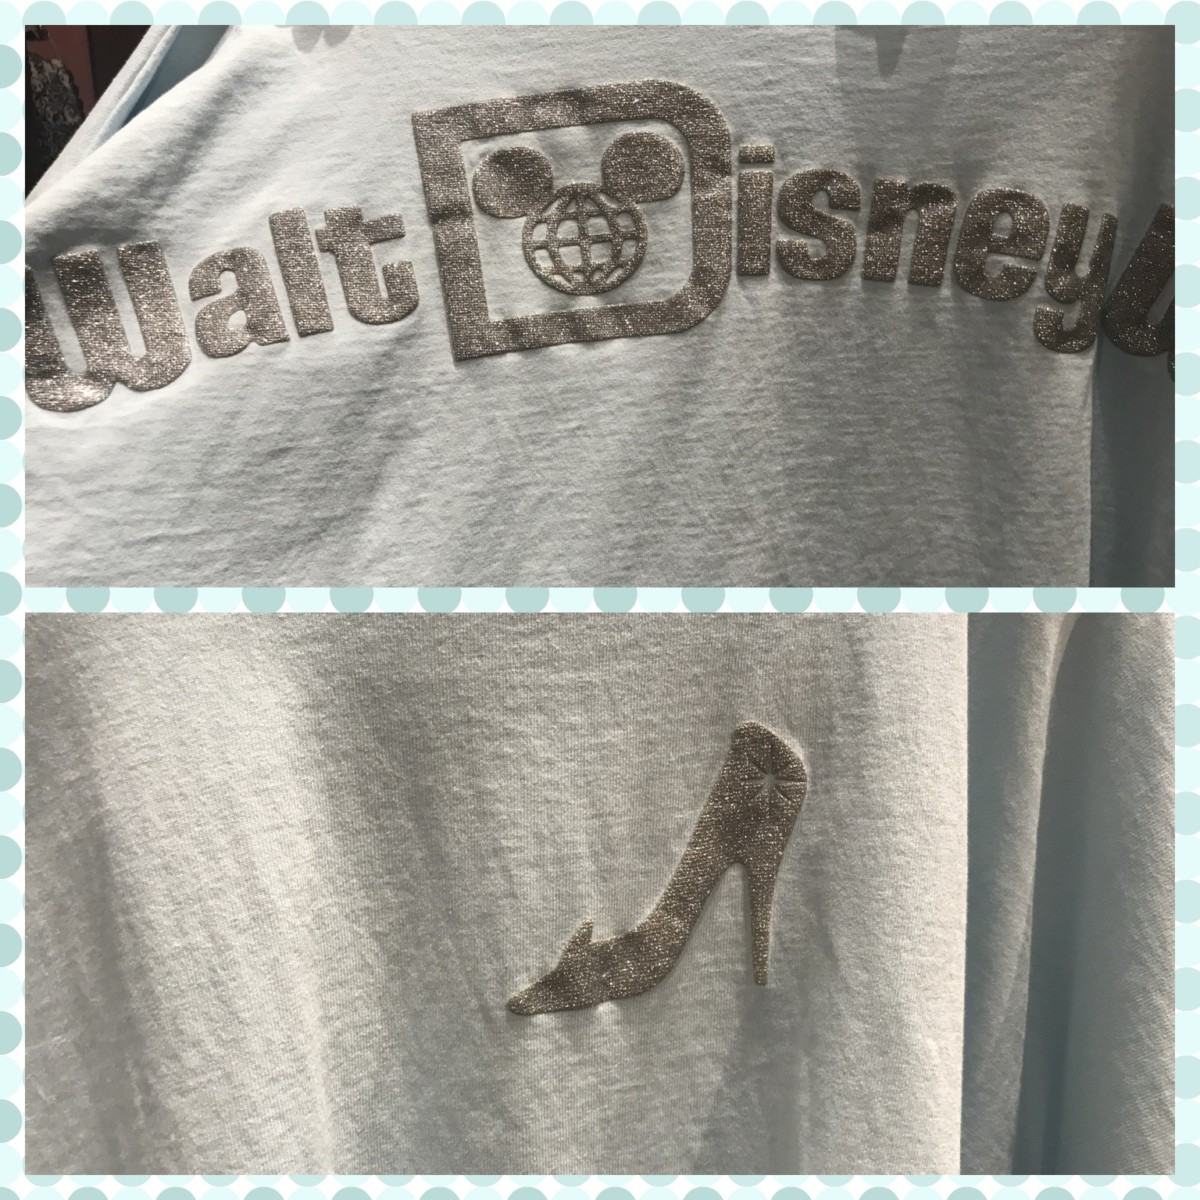 Re-Post! New Princess Spirit Jerseys, Disney Springs! See all 4 Below! #DisneyStyle 3